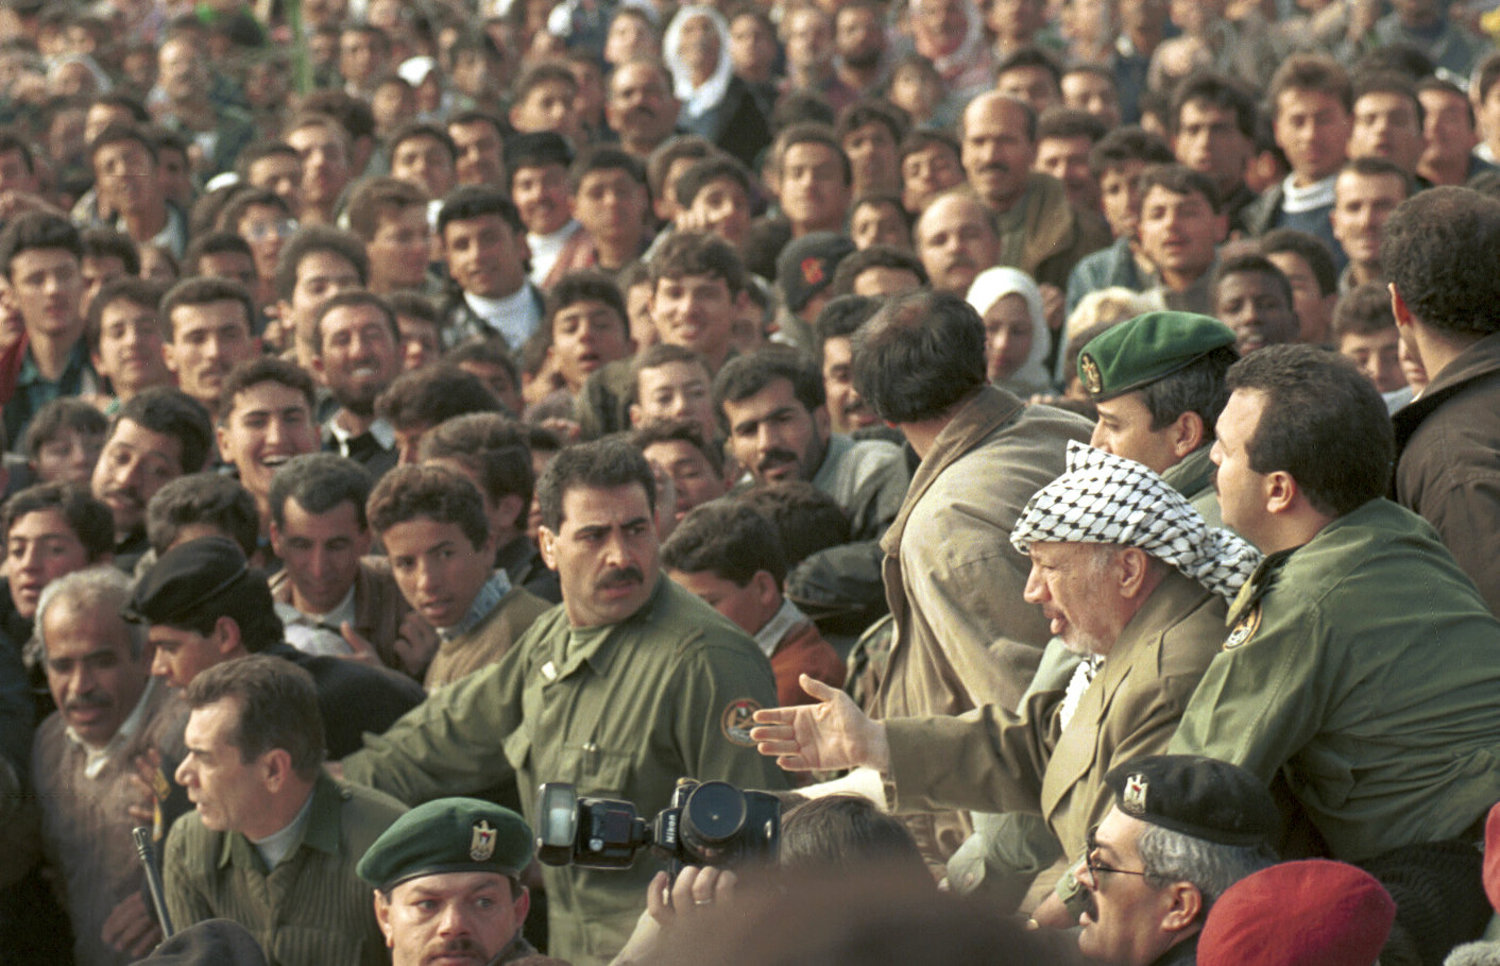 Palestinian president Yasser Arafat is cheered on by supporters as he visits the city of Hebron in the occupied West Bank, January 19, 1997. (Nati Shohat/Flash90)